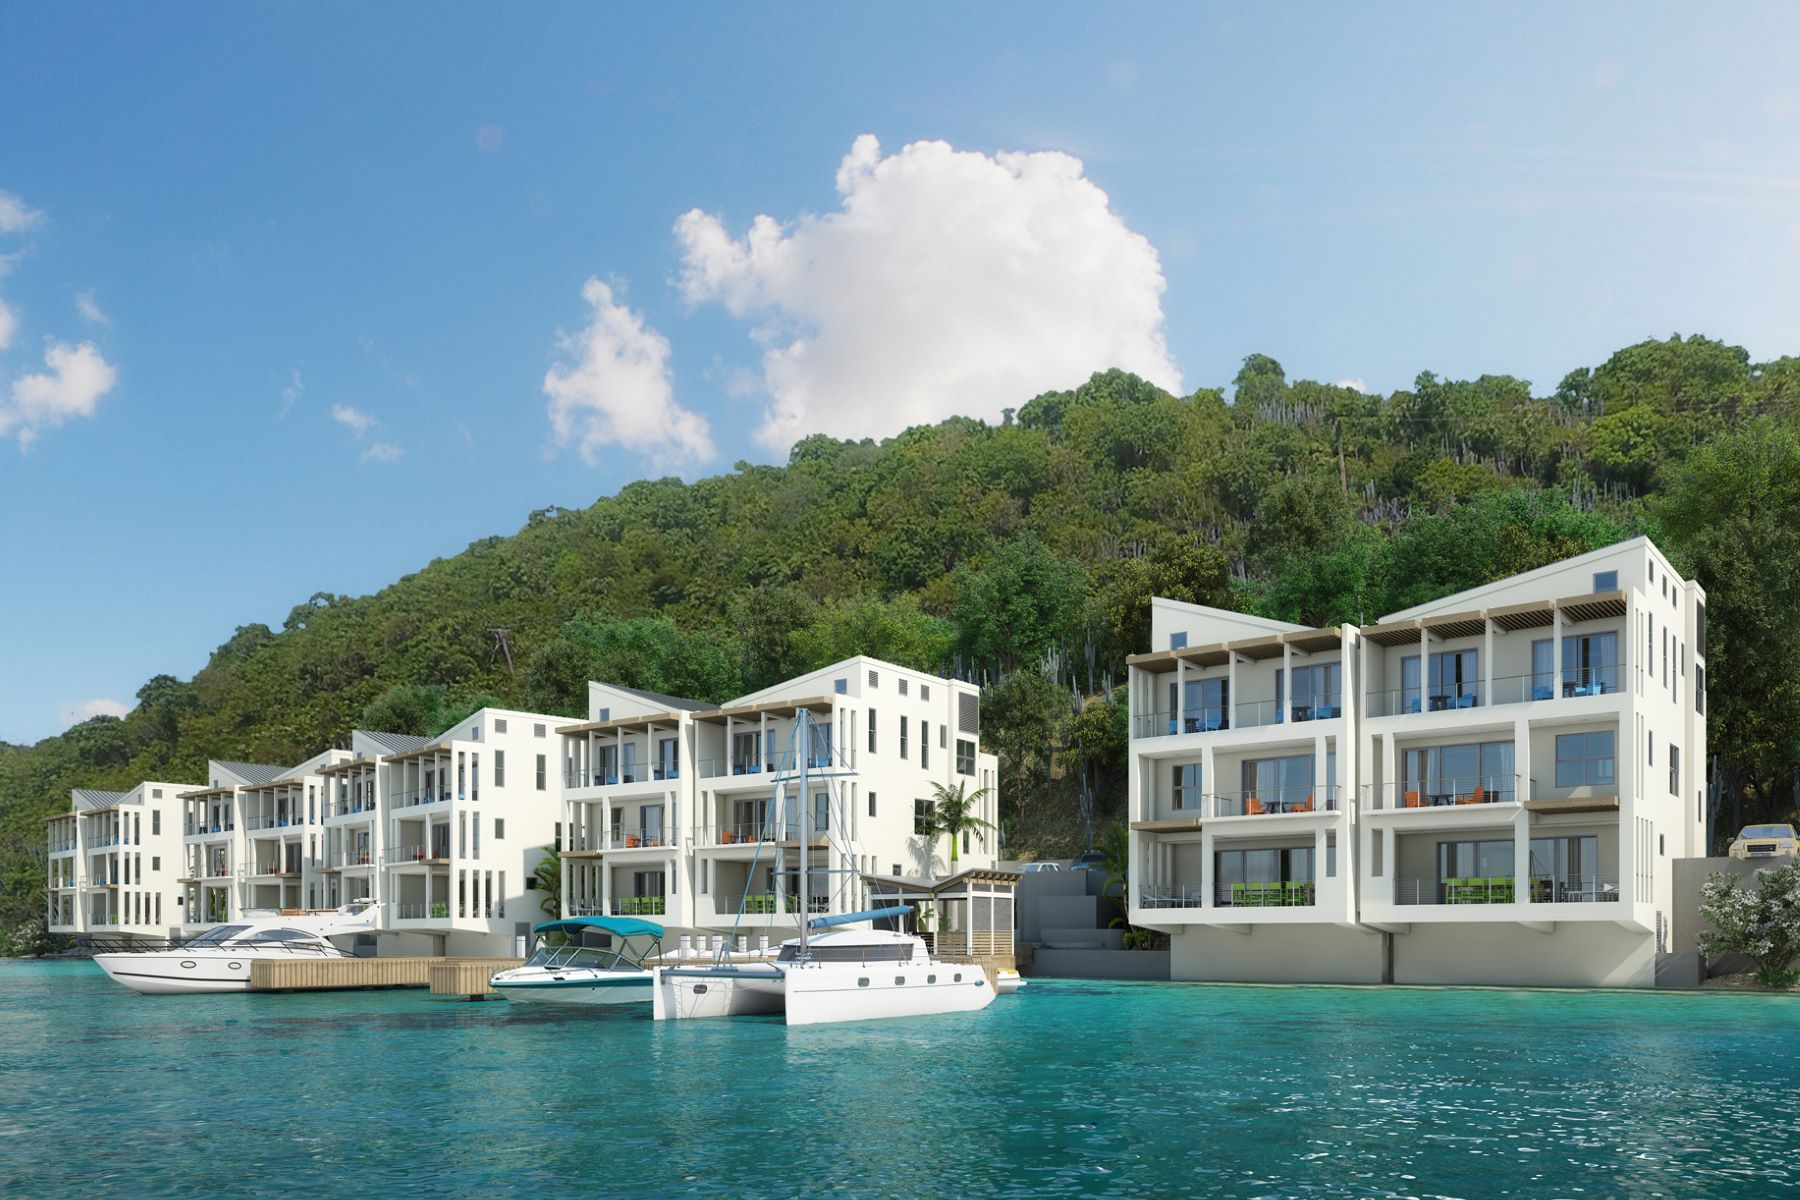 Additional photo for property listing at Brandywine Bay Oceanfront Condos Autres Tortola, Tortola Iles Vierges Britanniques